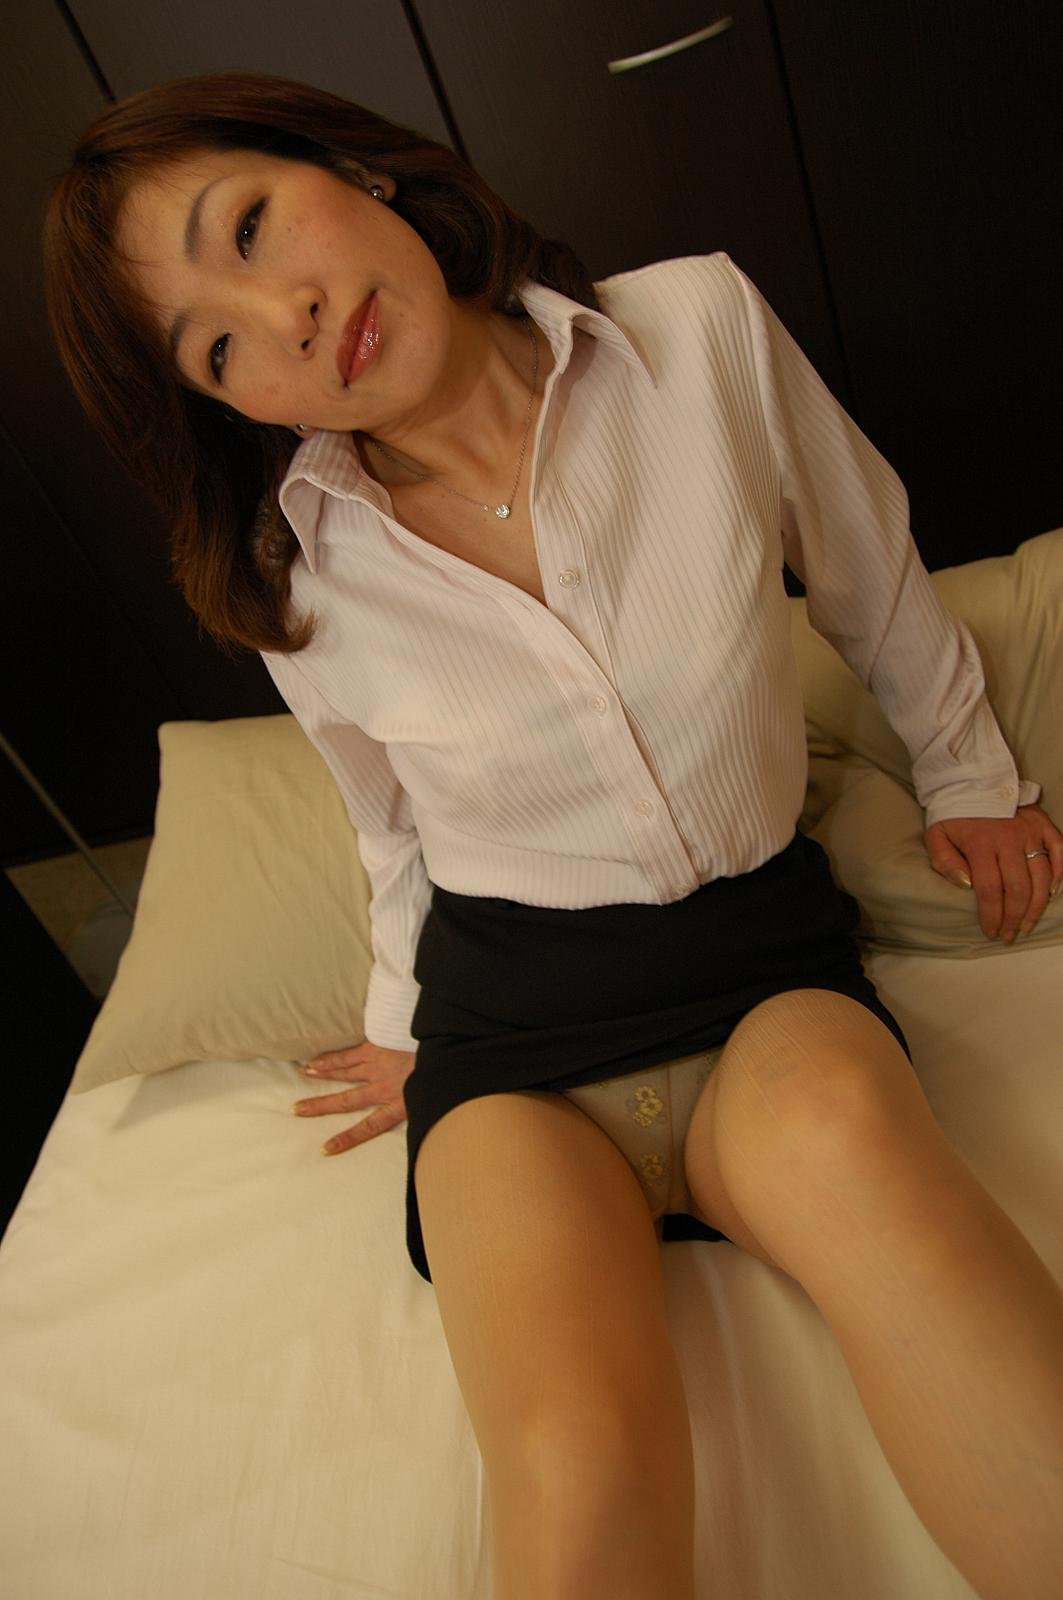 Mature asian women panties consider, that